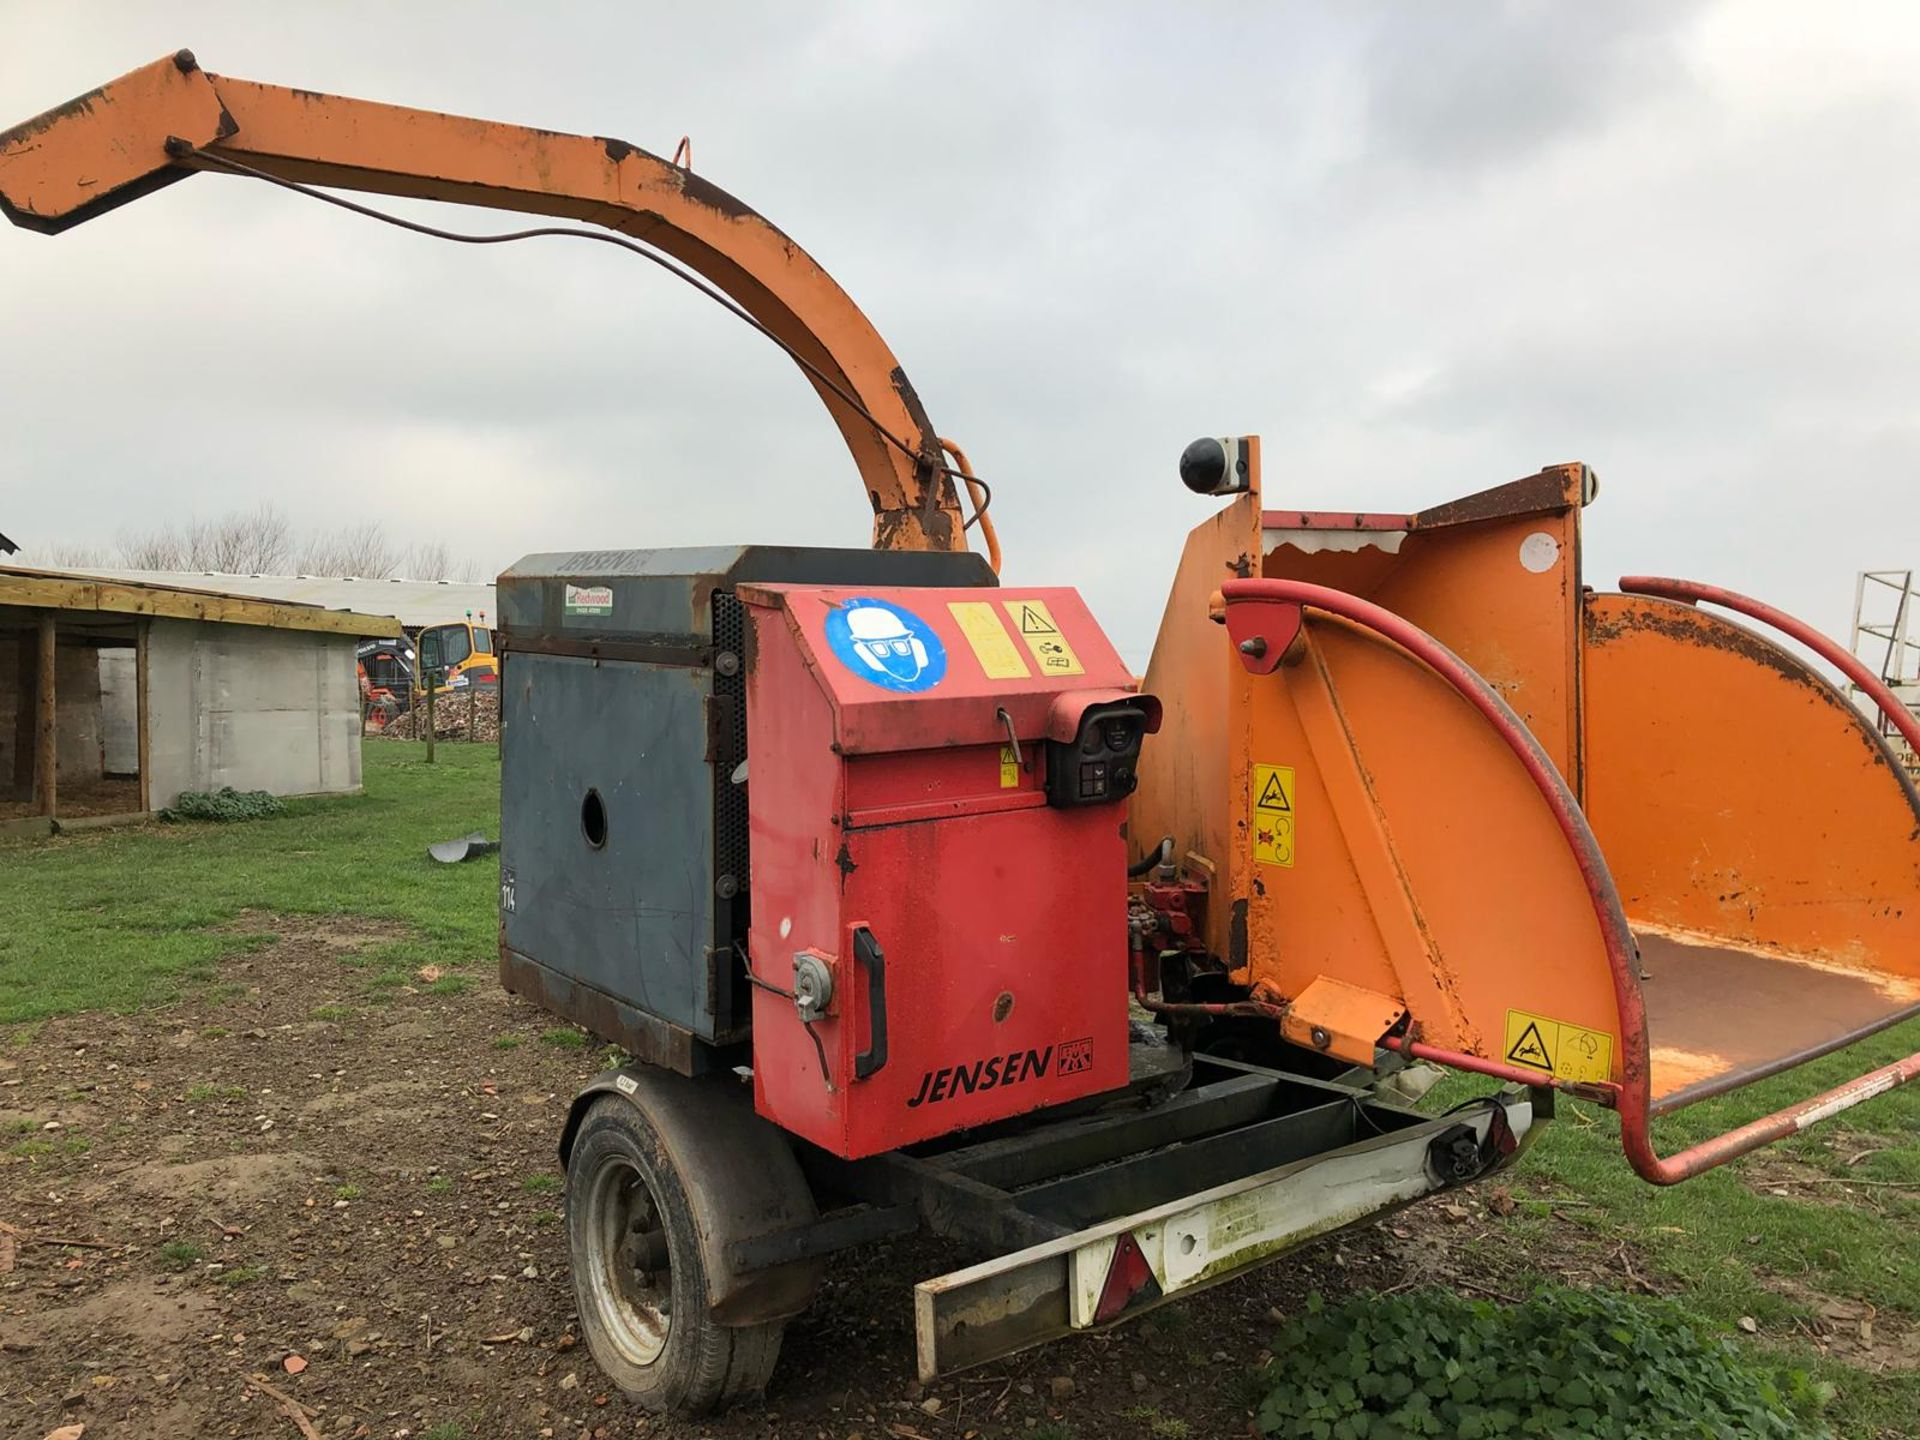 DS -QUALITY 2004 JENSEN DIESEL TURNTABLE CHIPPER, QUALITY TRAILER - Image 3 of 8